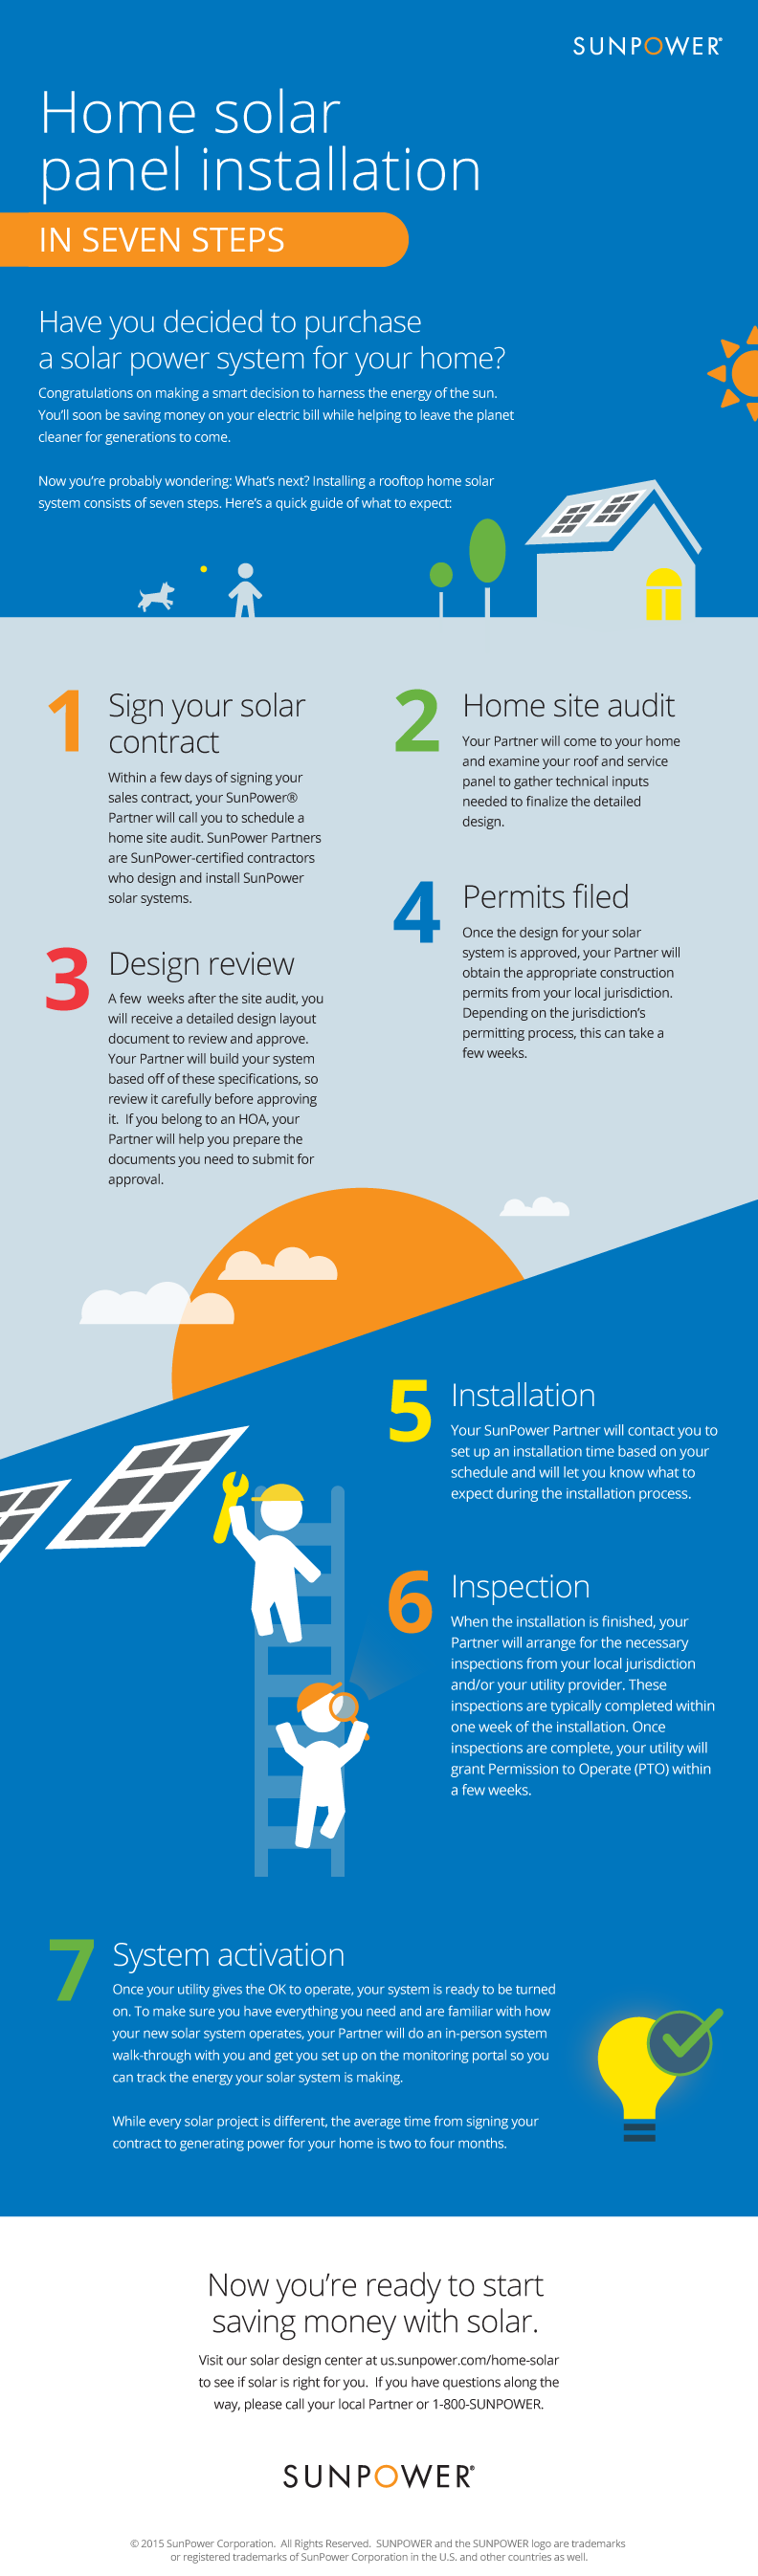 heres our full solar panel installation graphic - Home Solar Power System Design